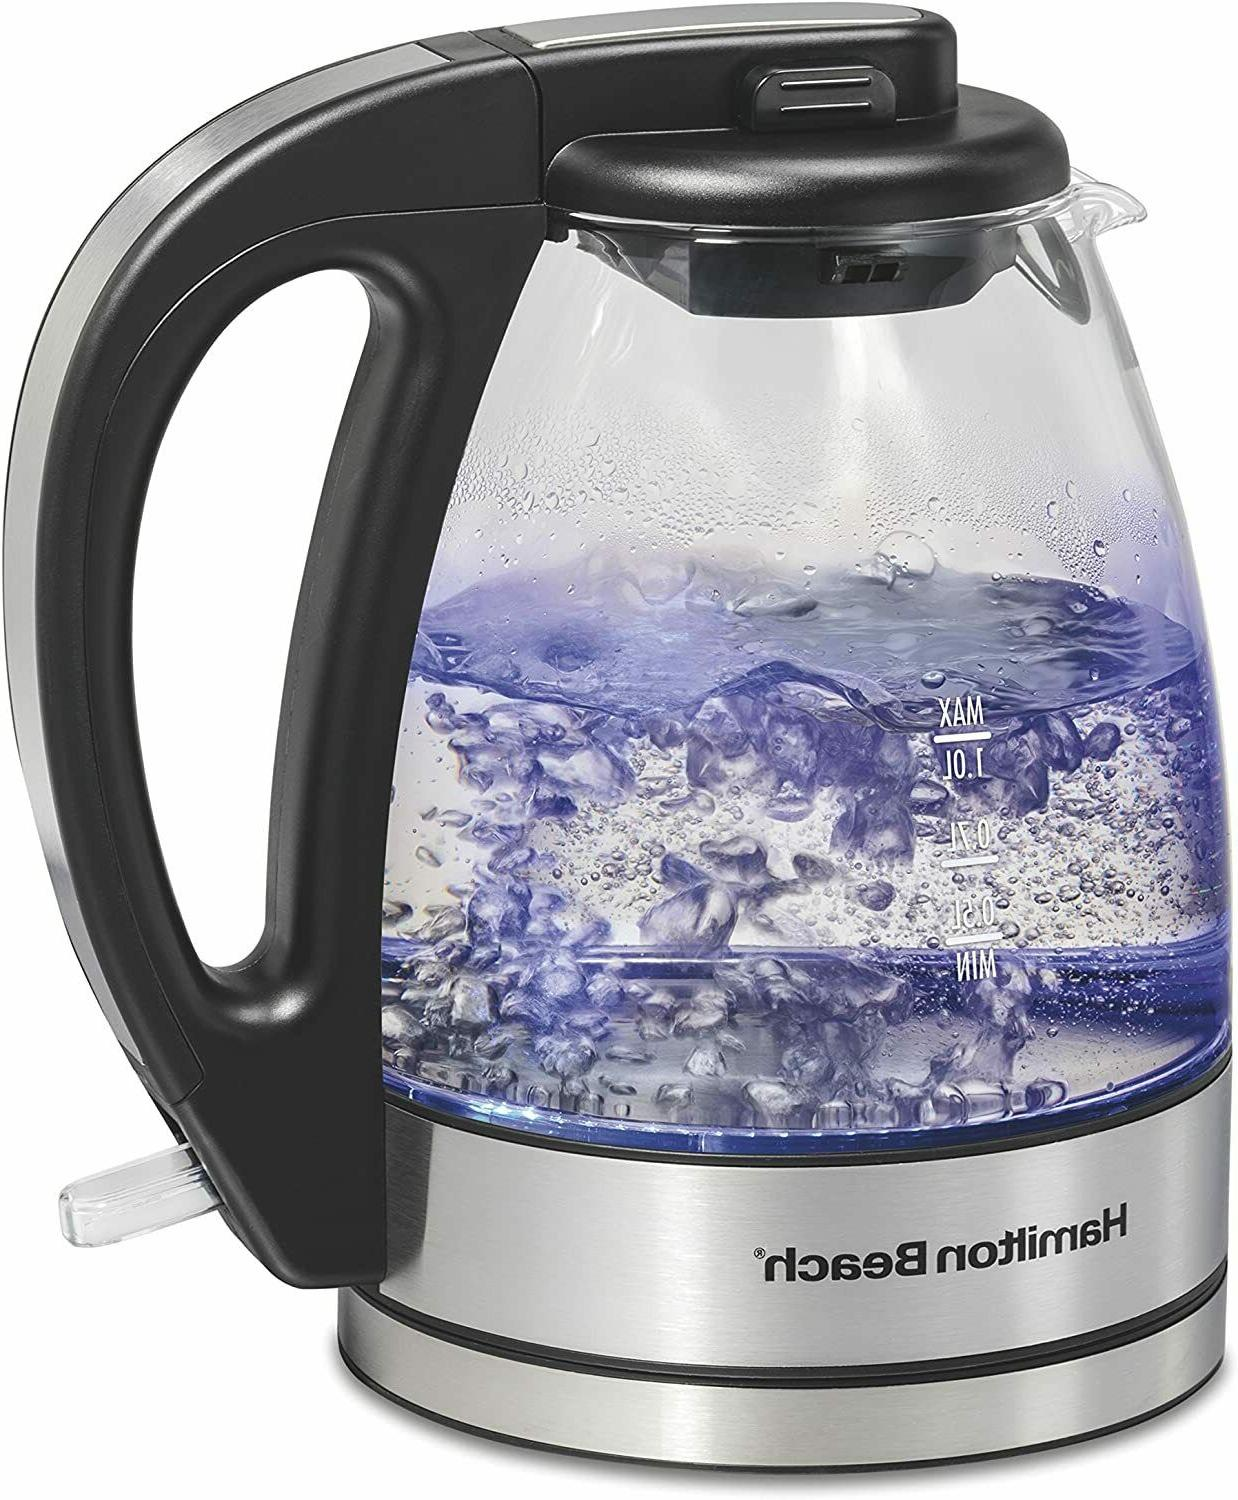 1 liter glass electric kettle for tea